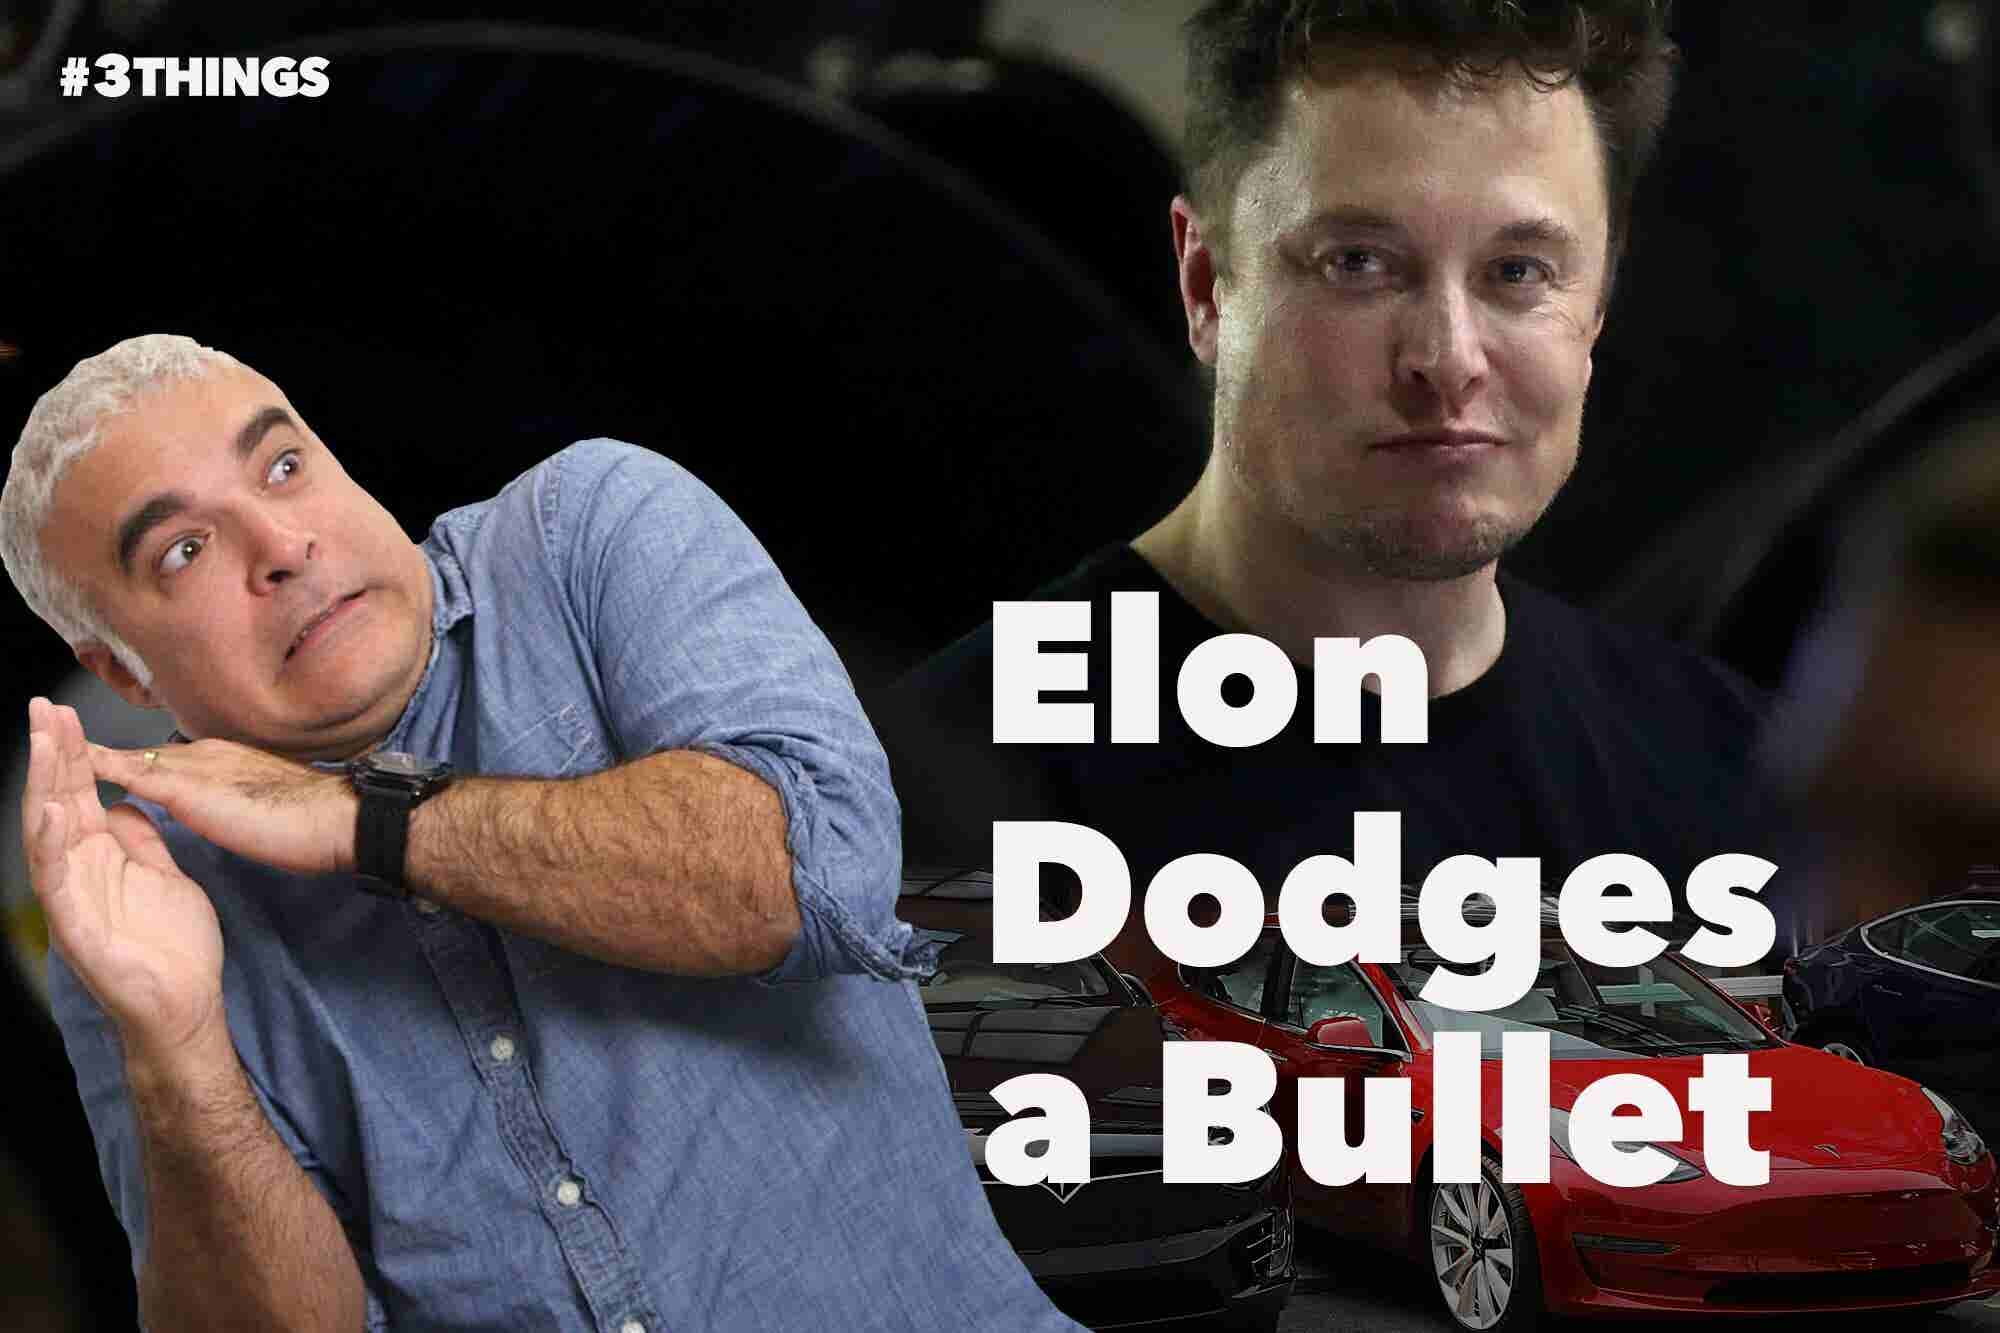 Elon Musk Dodges a Bullet. 3 Things to Know Today.